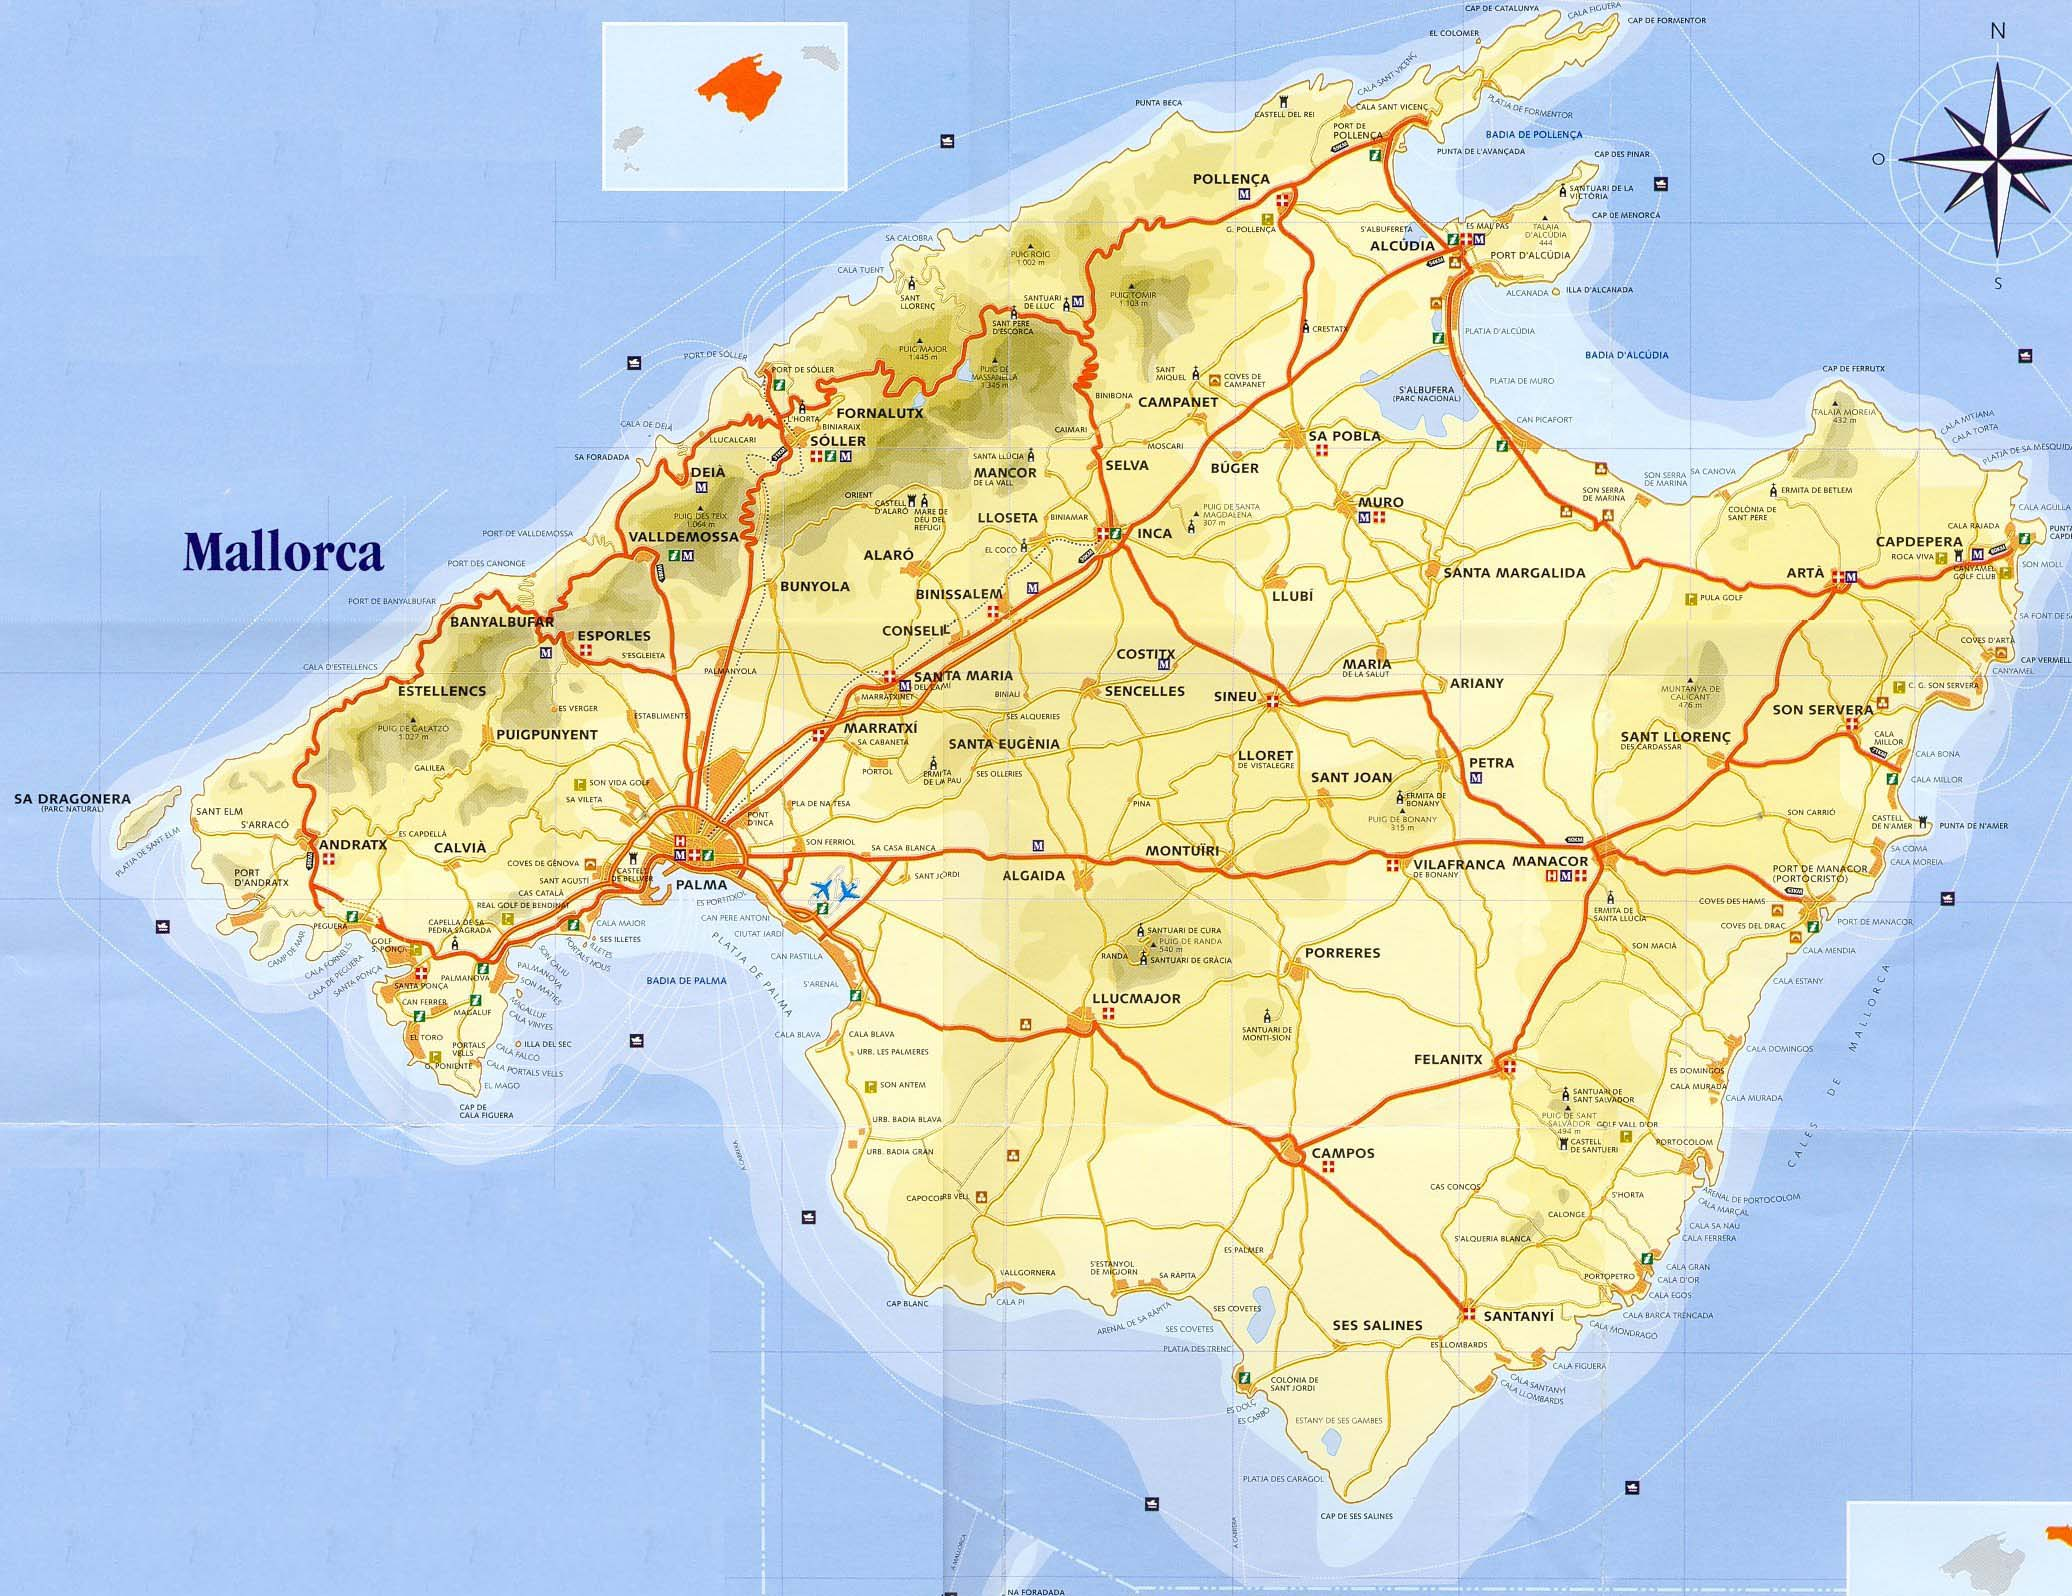 kart over mallorca Large Mallorca Maps for Free Download and Print | High Resolution  kart over mallorca